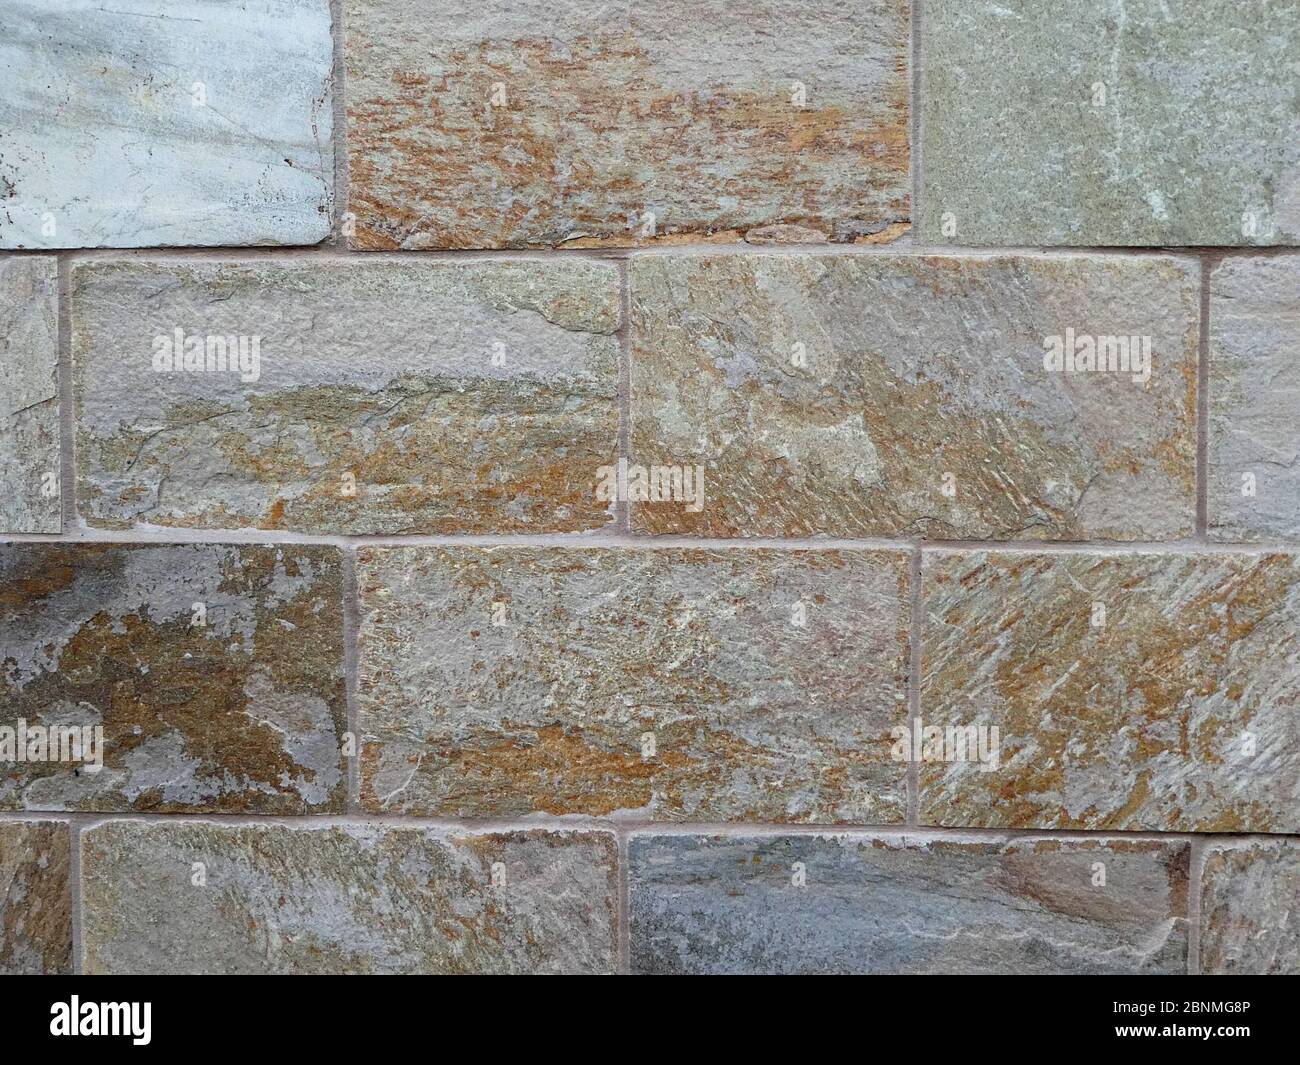 Stone Cladding High Resolution Stock Photography And Images Alamy